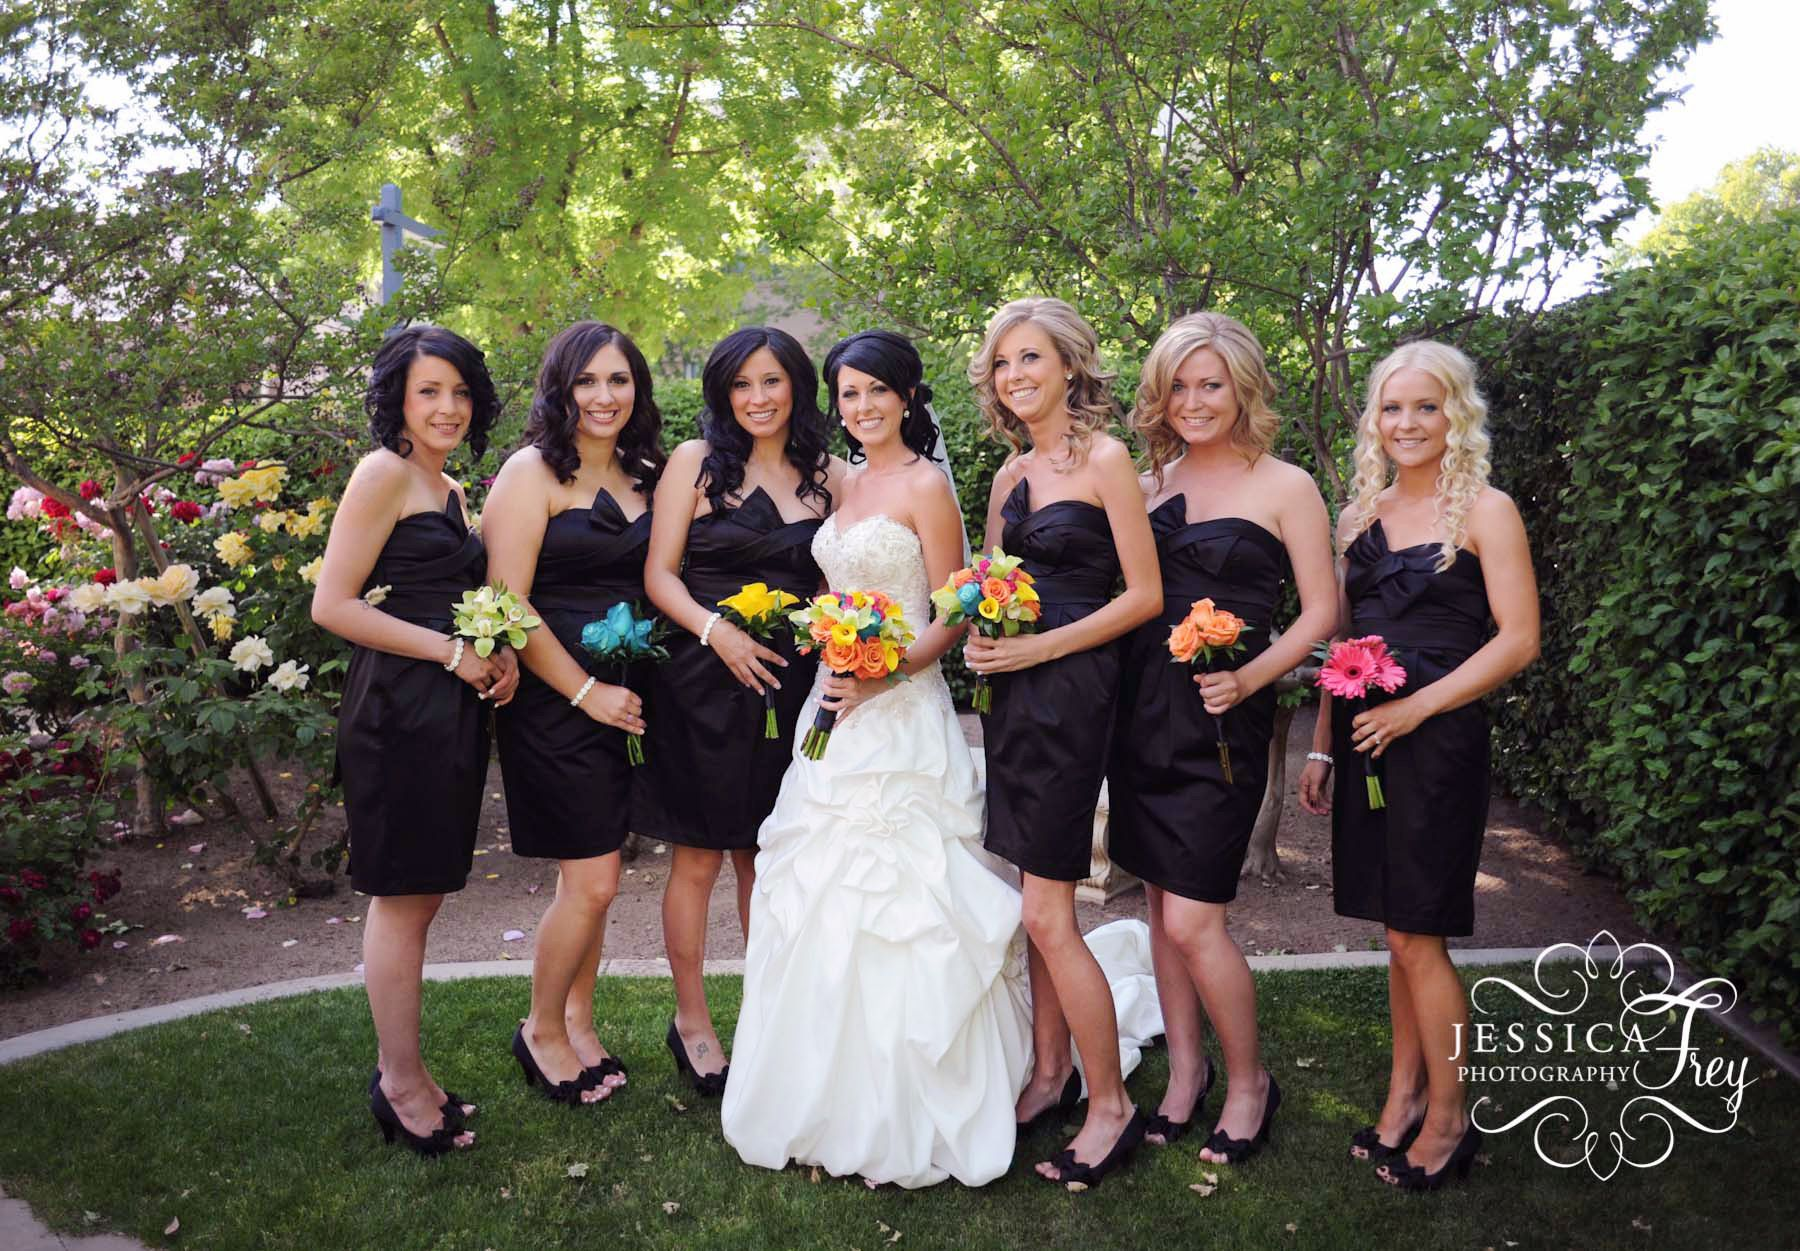 Google image result for httpjessicafreyphotographyblog bridesmaid dresses alternative bridesmaid dress ideas mesmerizing black bridesmaid dresses wonderful photos of bridesmaids dresses design ombrellifo Image collections